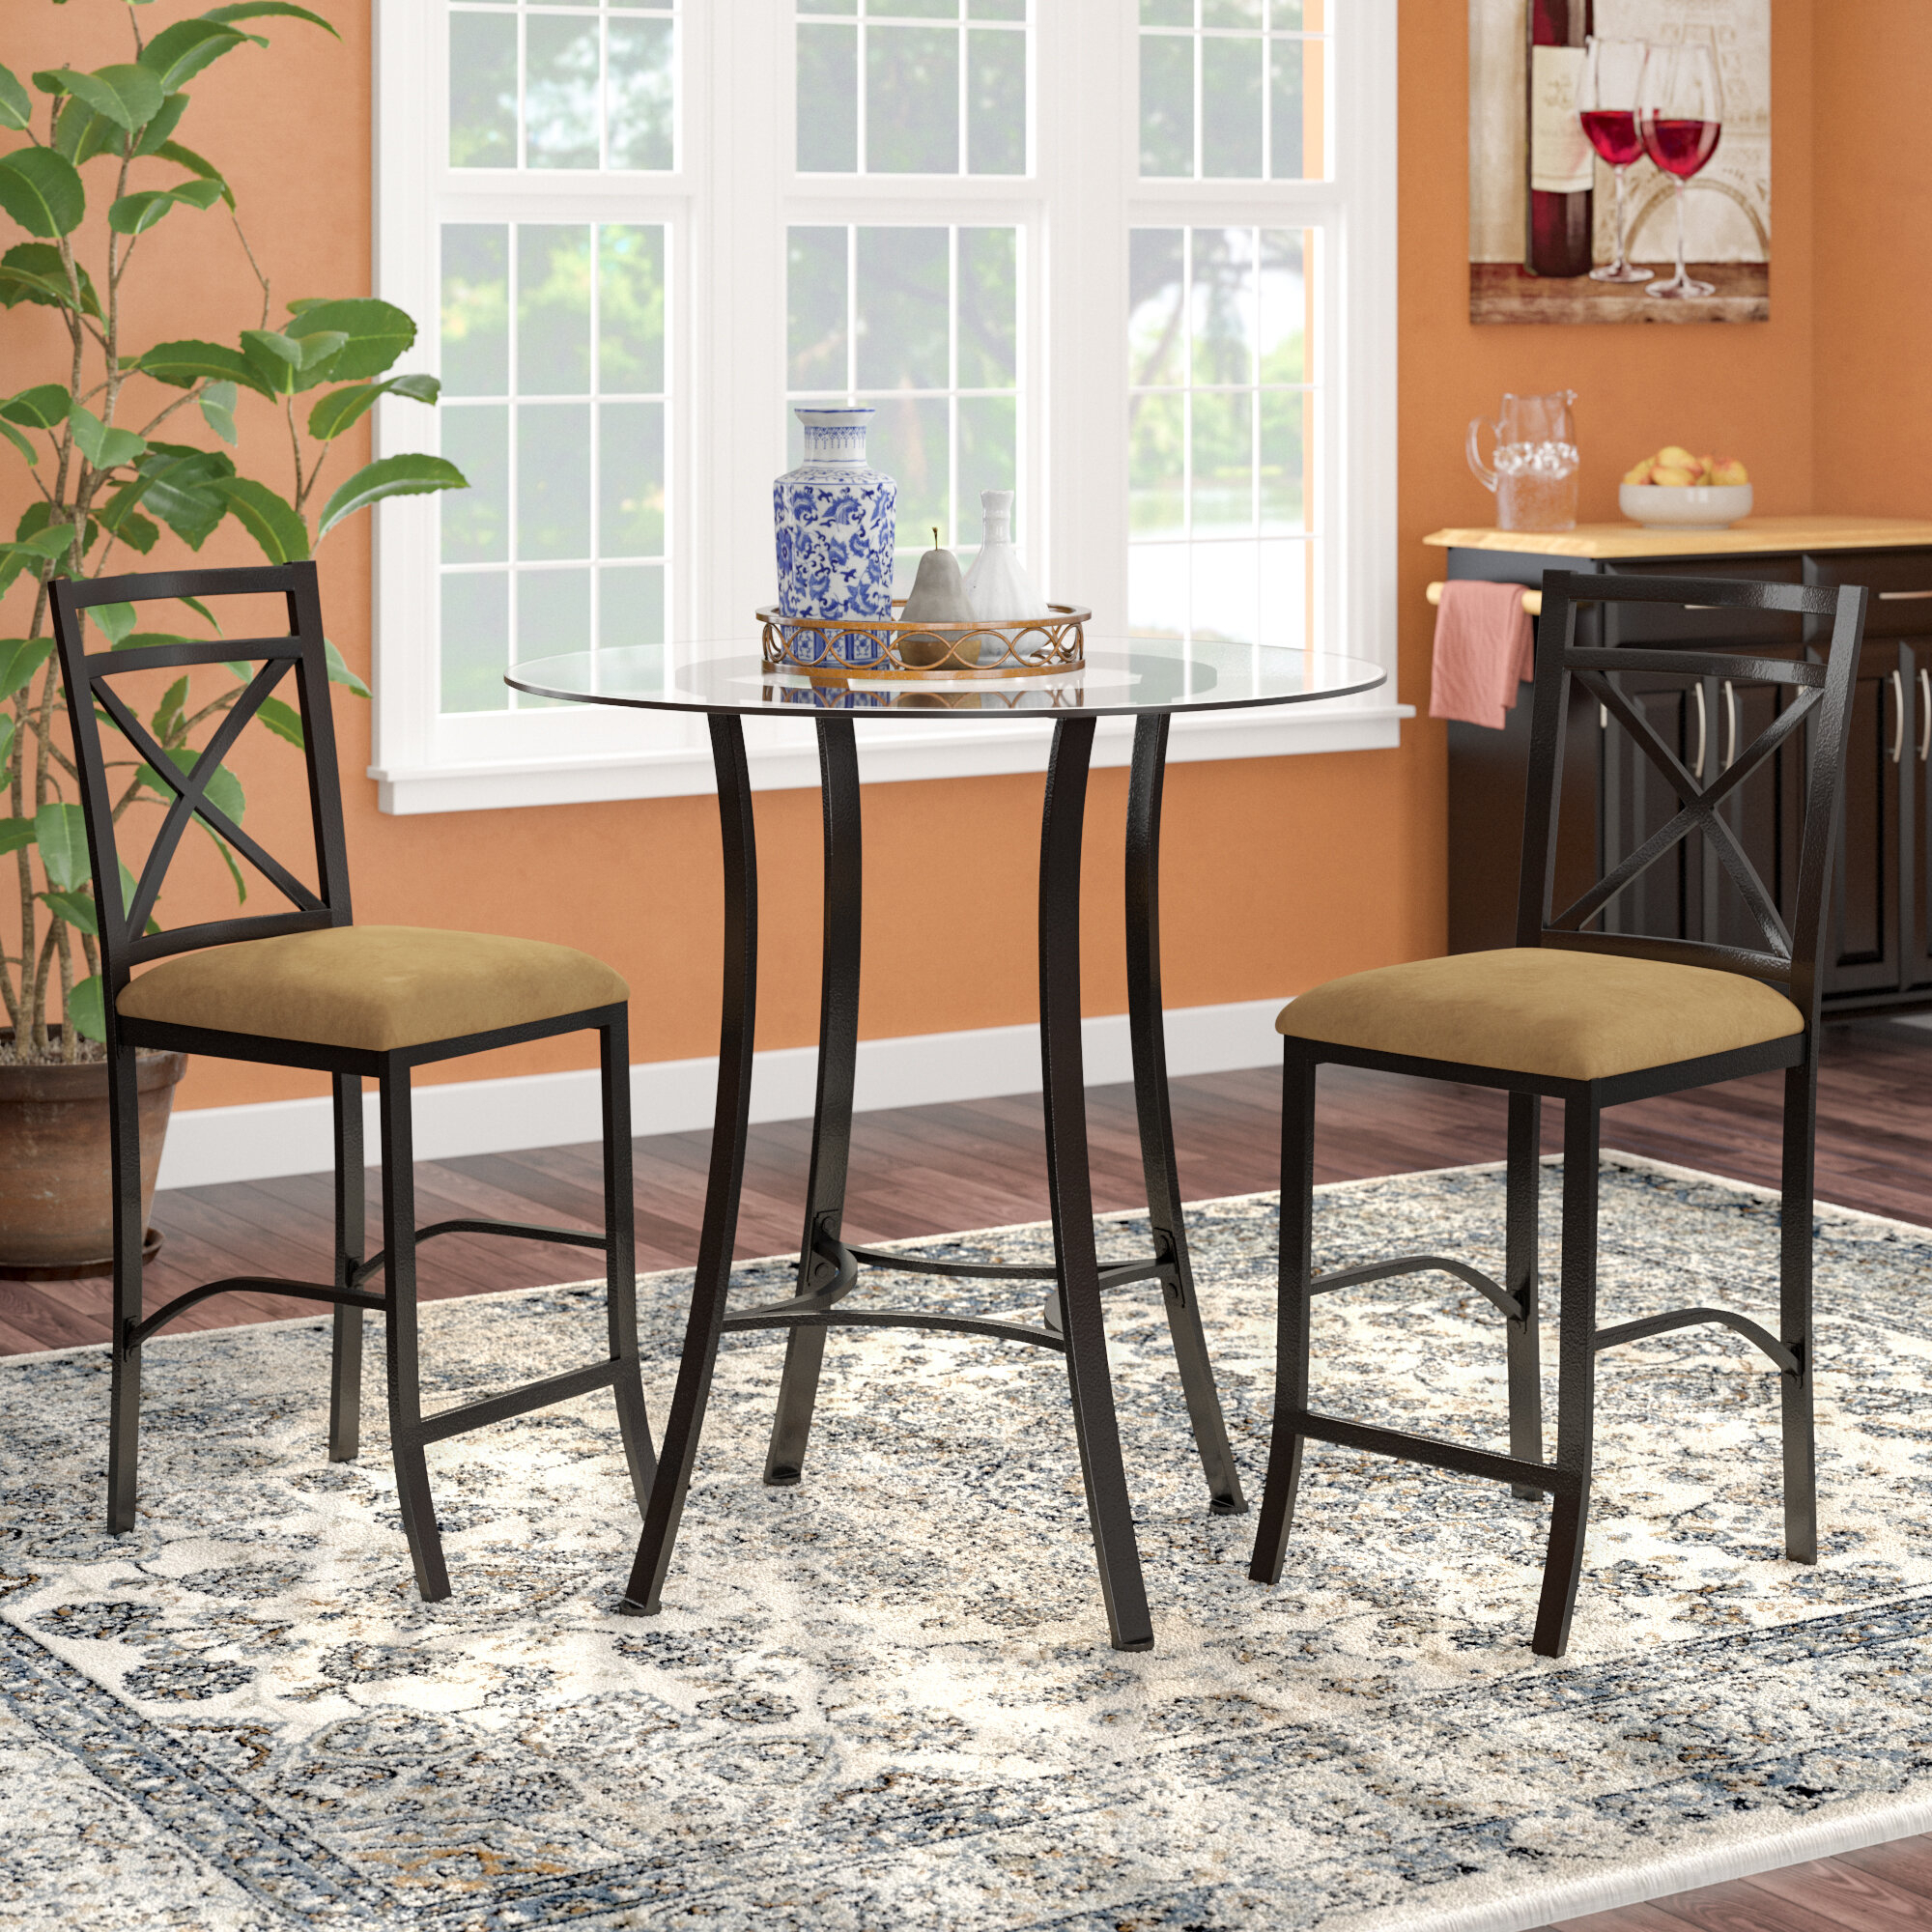 Mitzel 3 Piece Dining Sets Pertaining To Famous Winston Porter Saleh 3 Piece Counter Height Dining Set (#6 of 20)